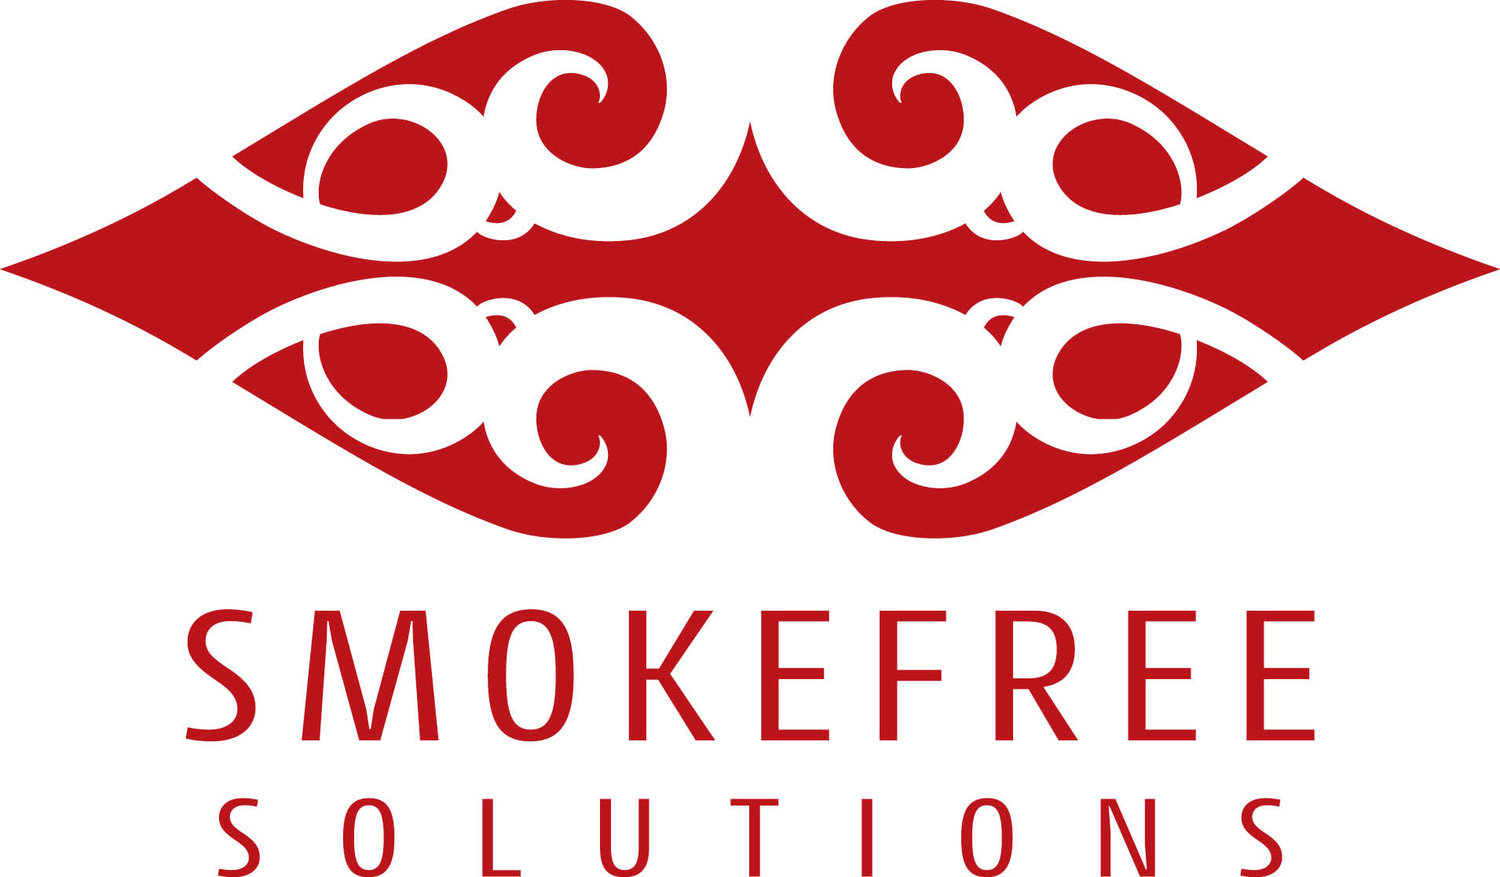 Smokefree Solutions Ltd